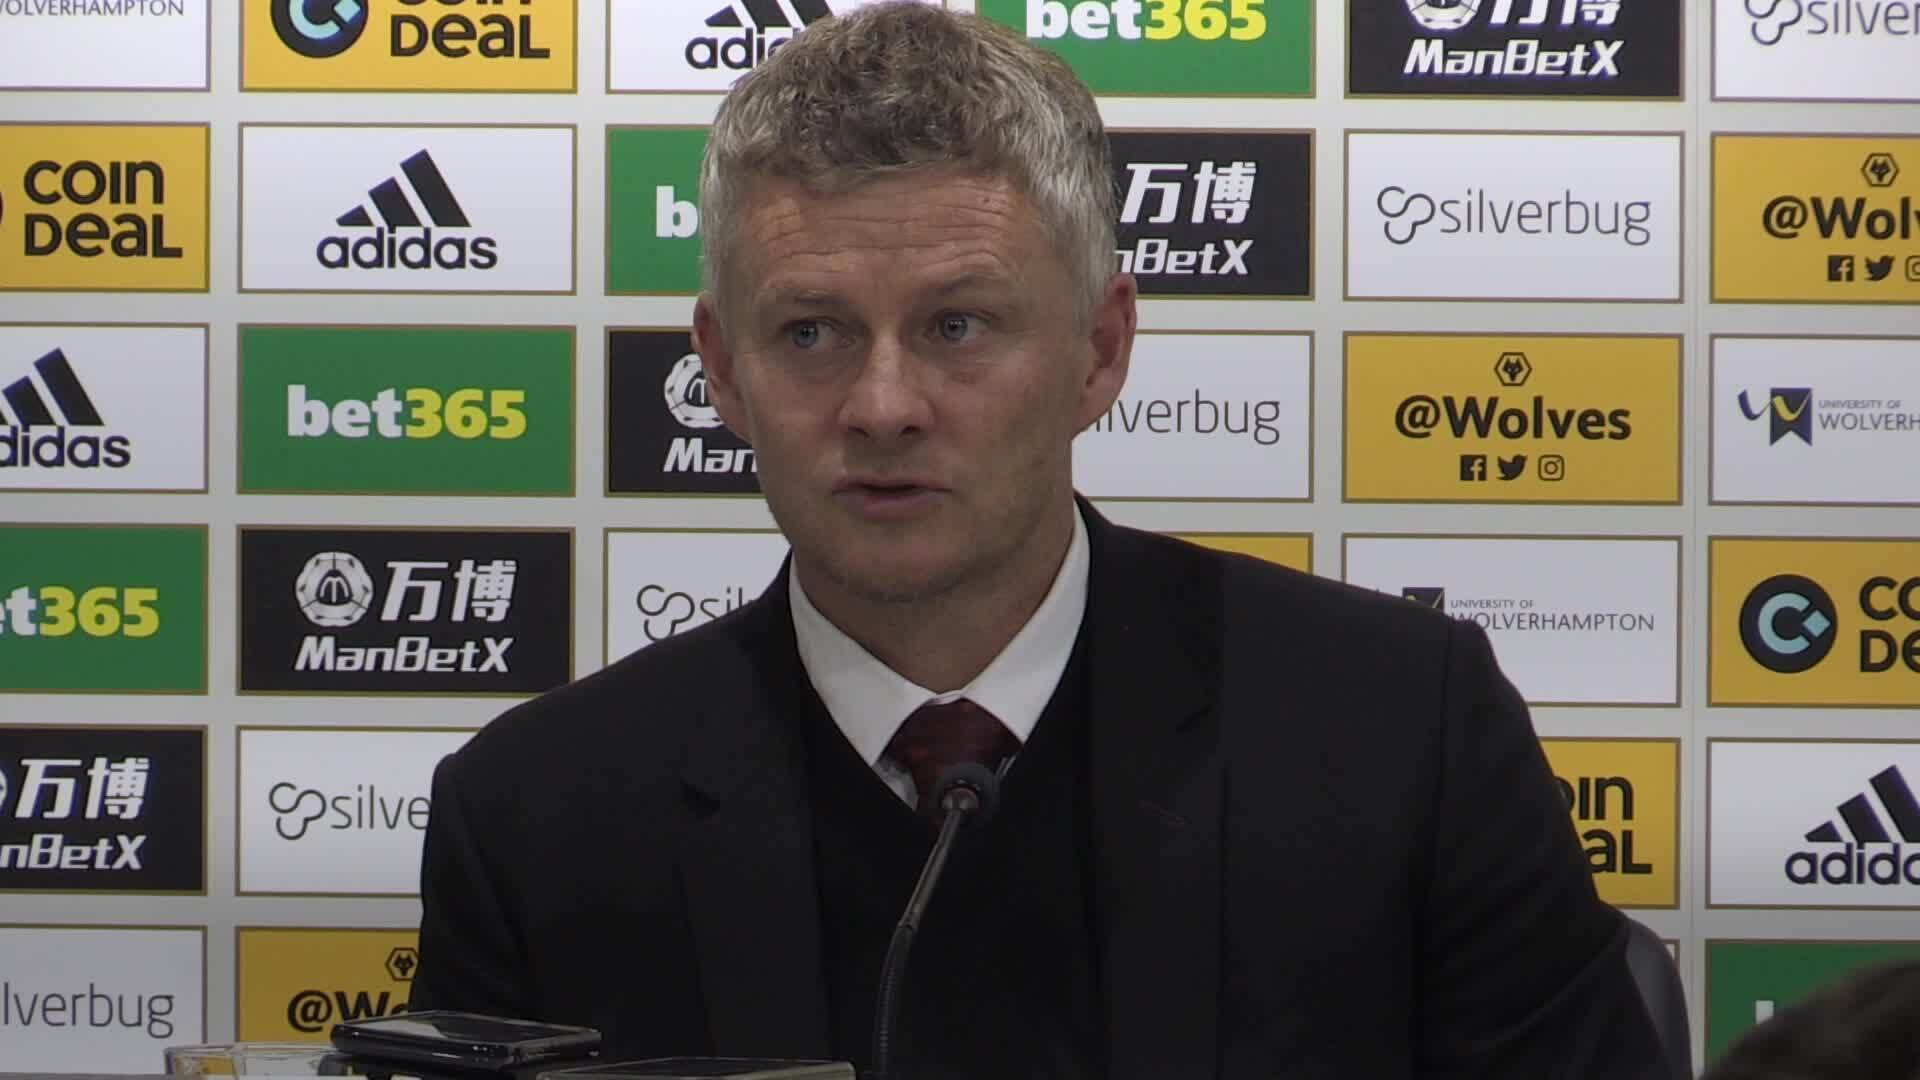 What Ole Gunnar Solskjaer's baby-faced Man Utd lineup vs Wolves says about his plans for the future